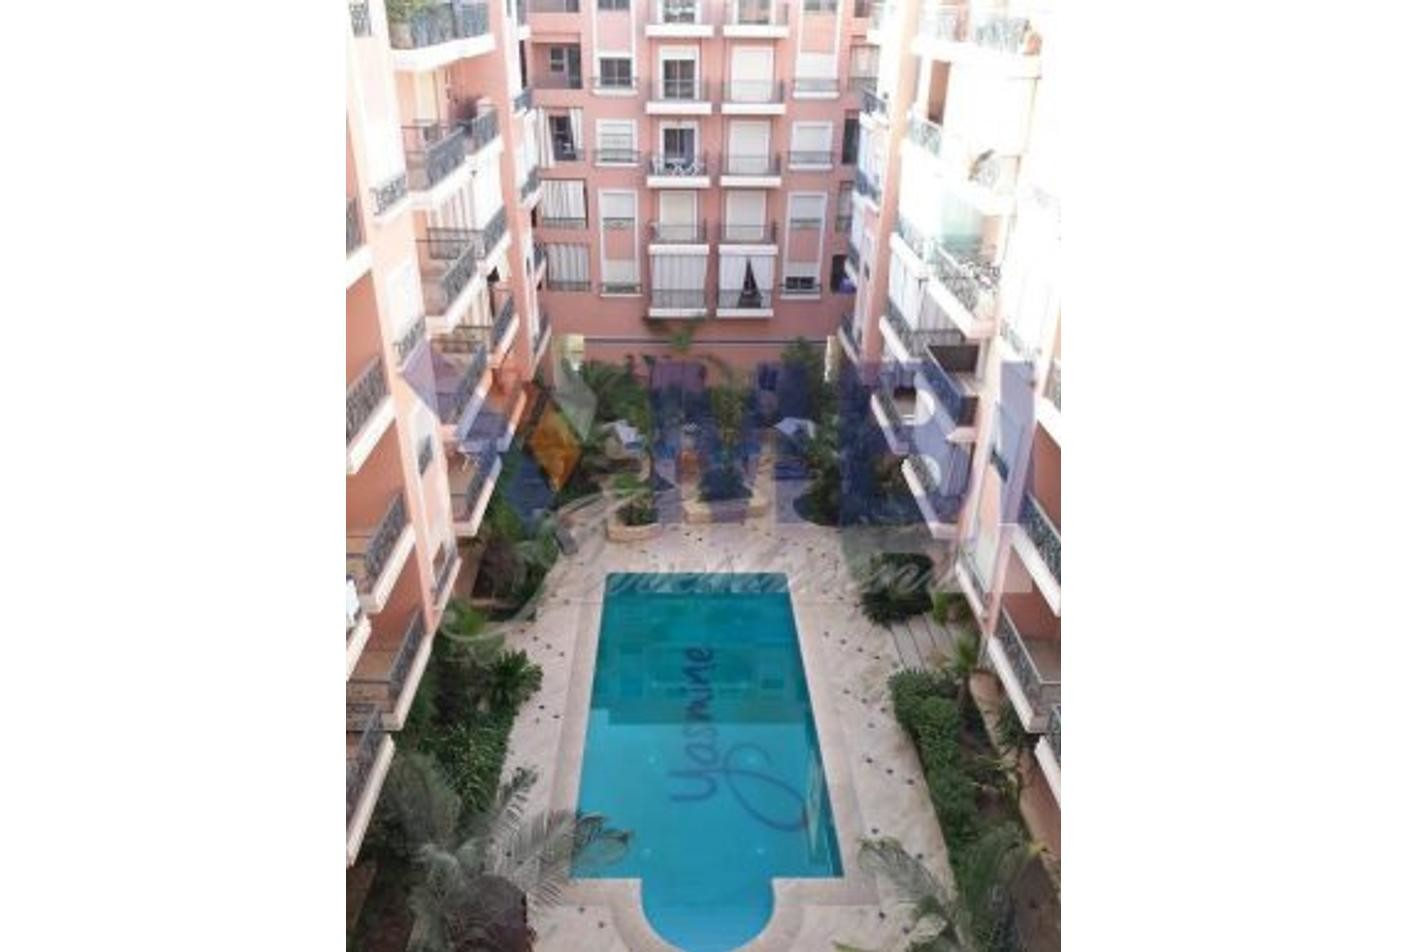 Vente <strong>Appartement</strong> Marrakech indéfini <strong>53 m2</strong>